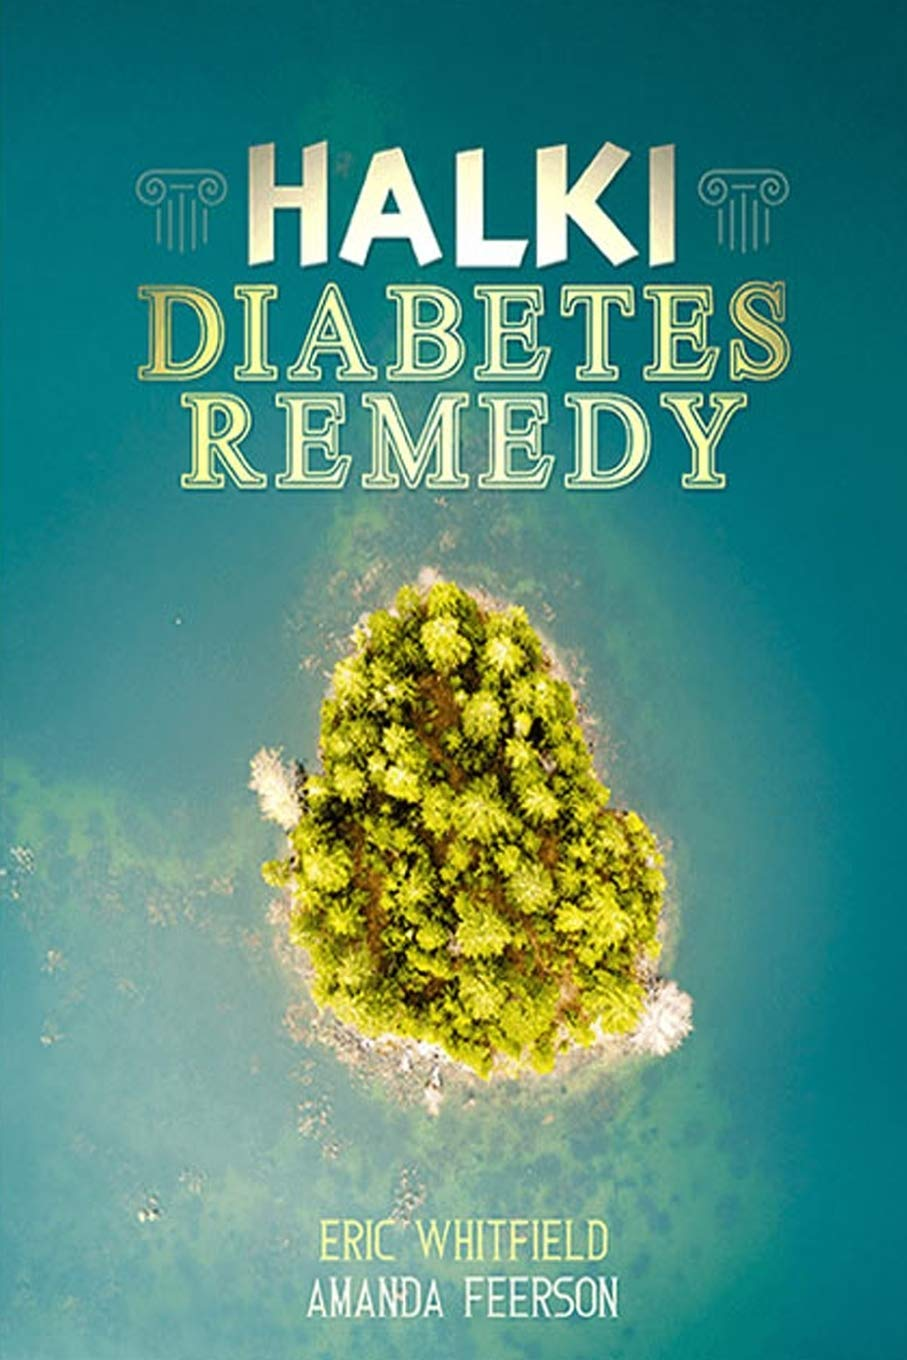 Amazon Prime Day Reserve Diabetes